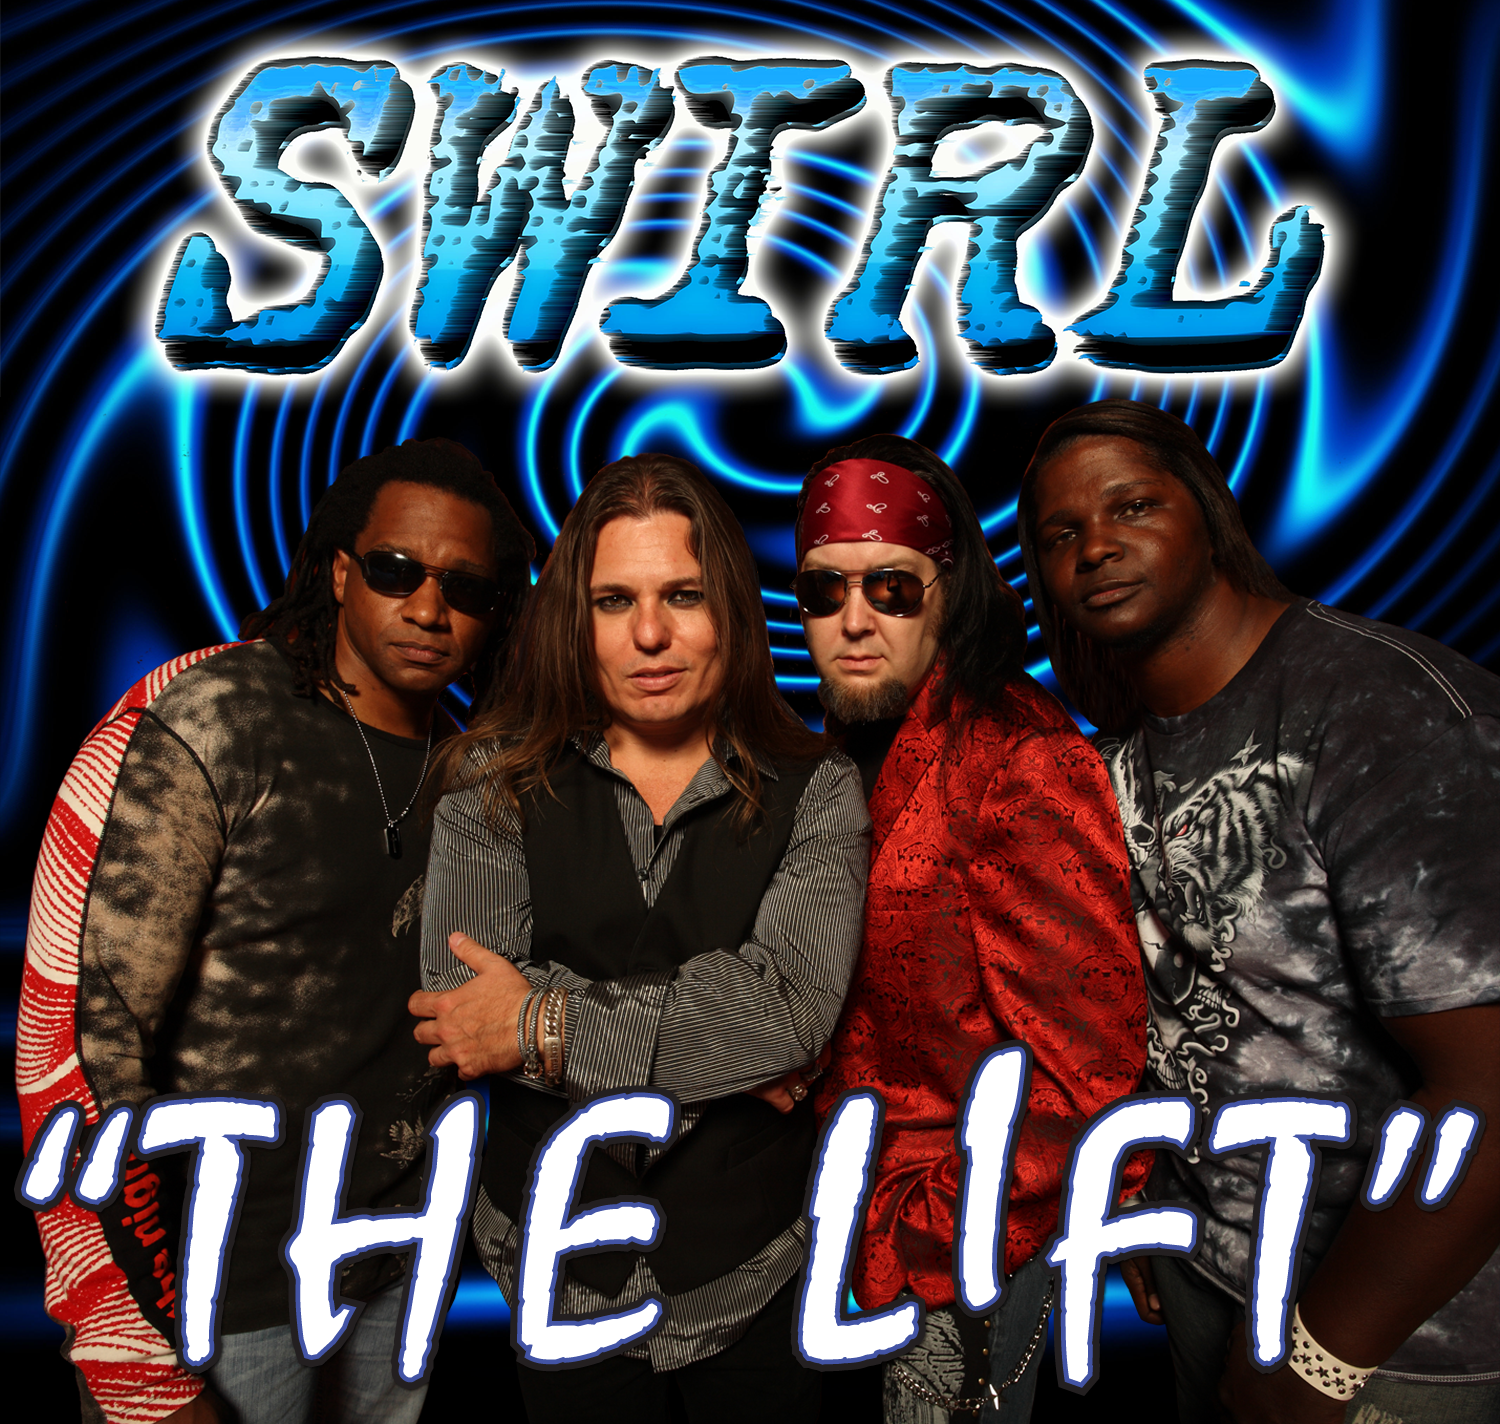 Swirl The Lift Band Photo (1)